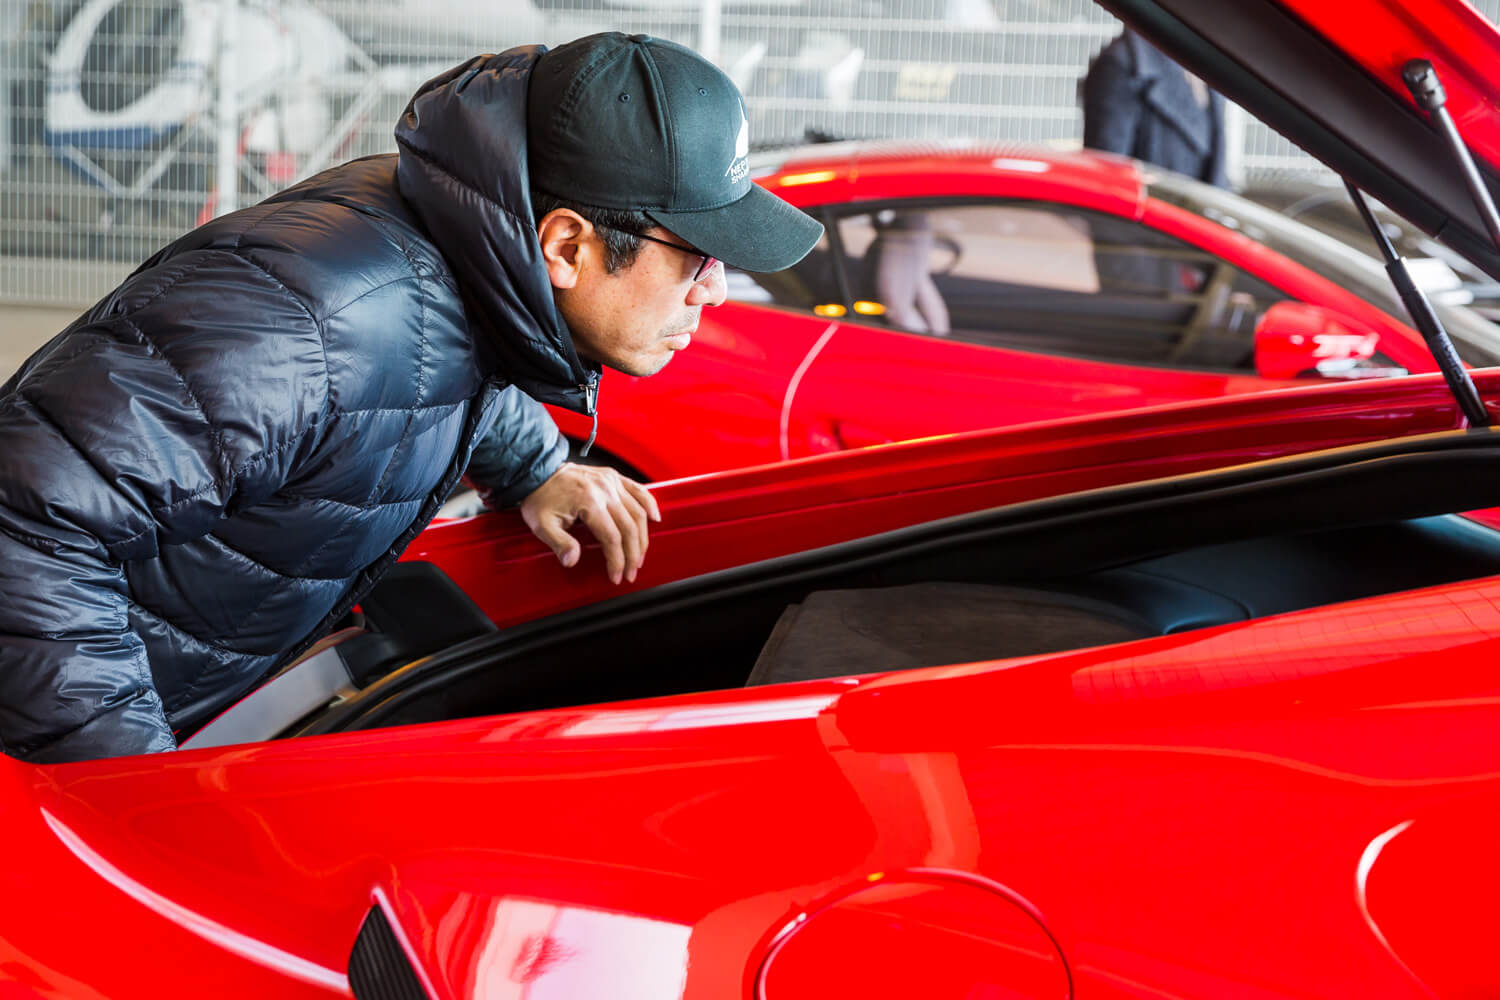 Ken Okuyama tests the trunk of the Ferrari Portofino